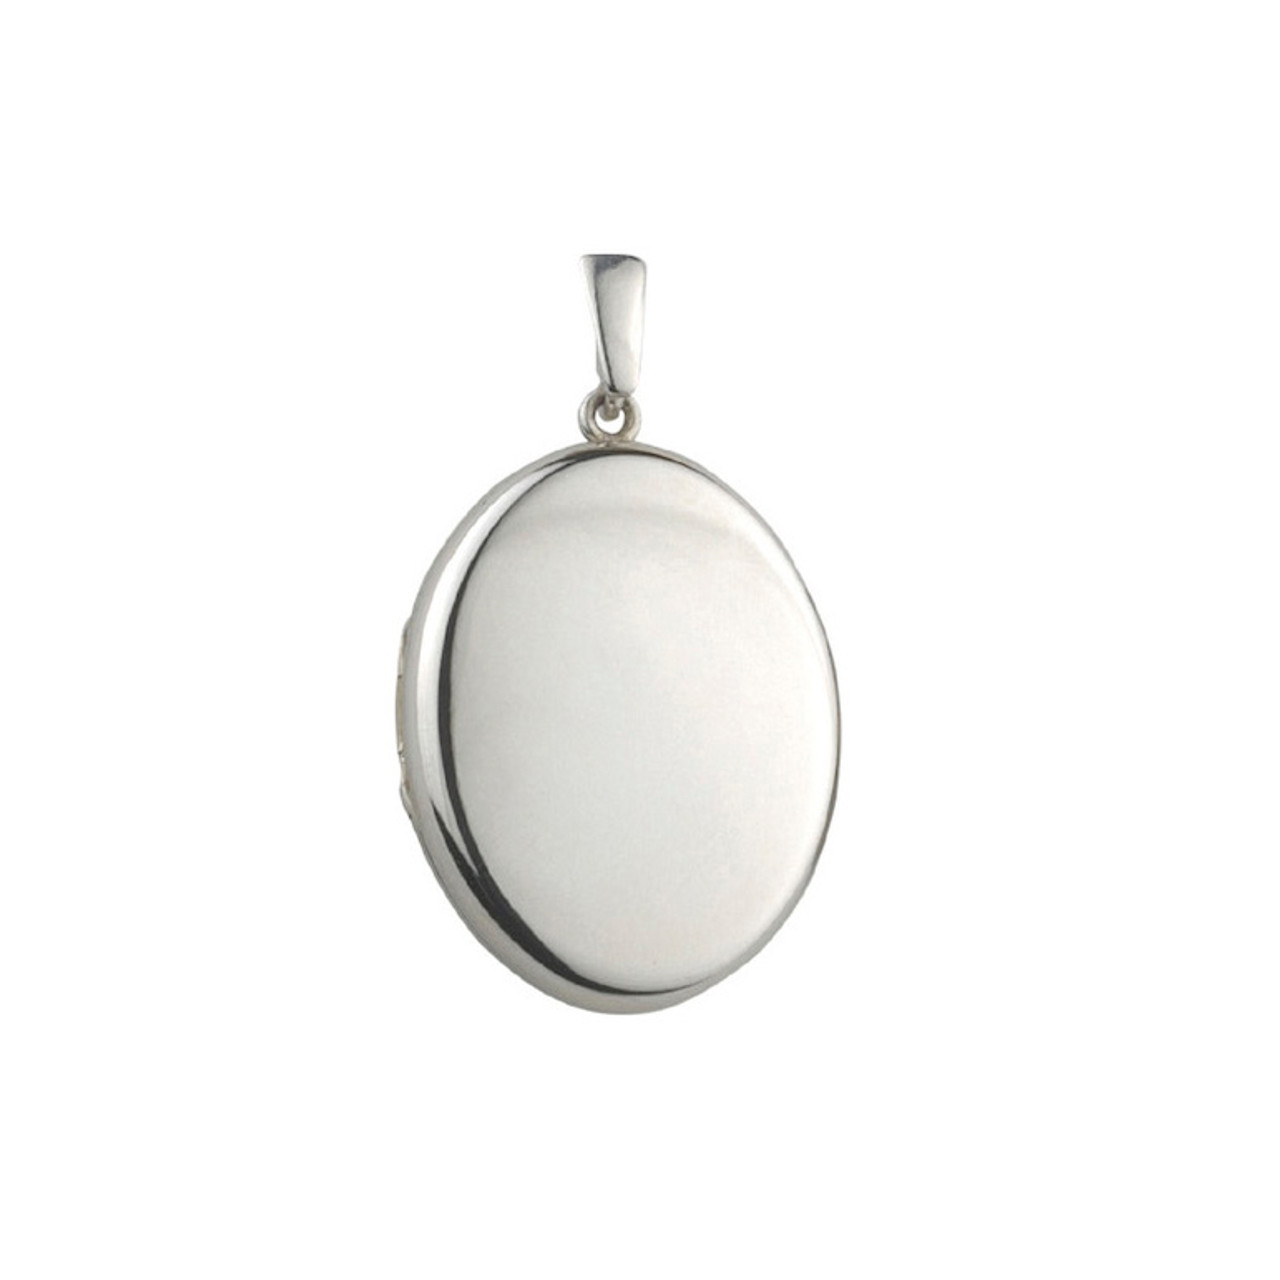 Silver 32mm Oval Locket & Chain